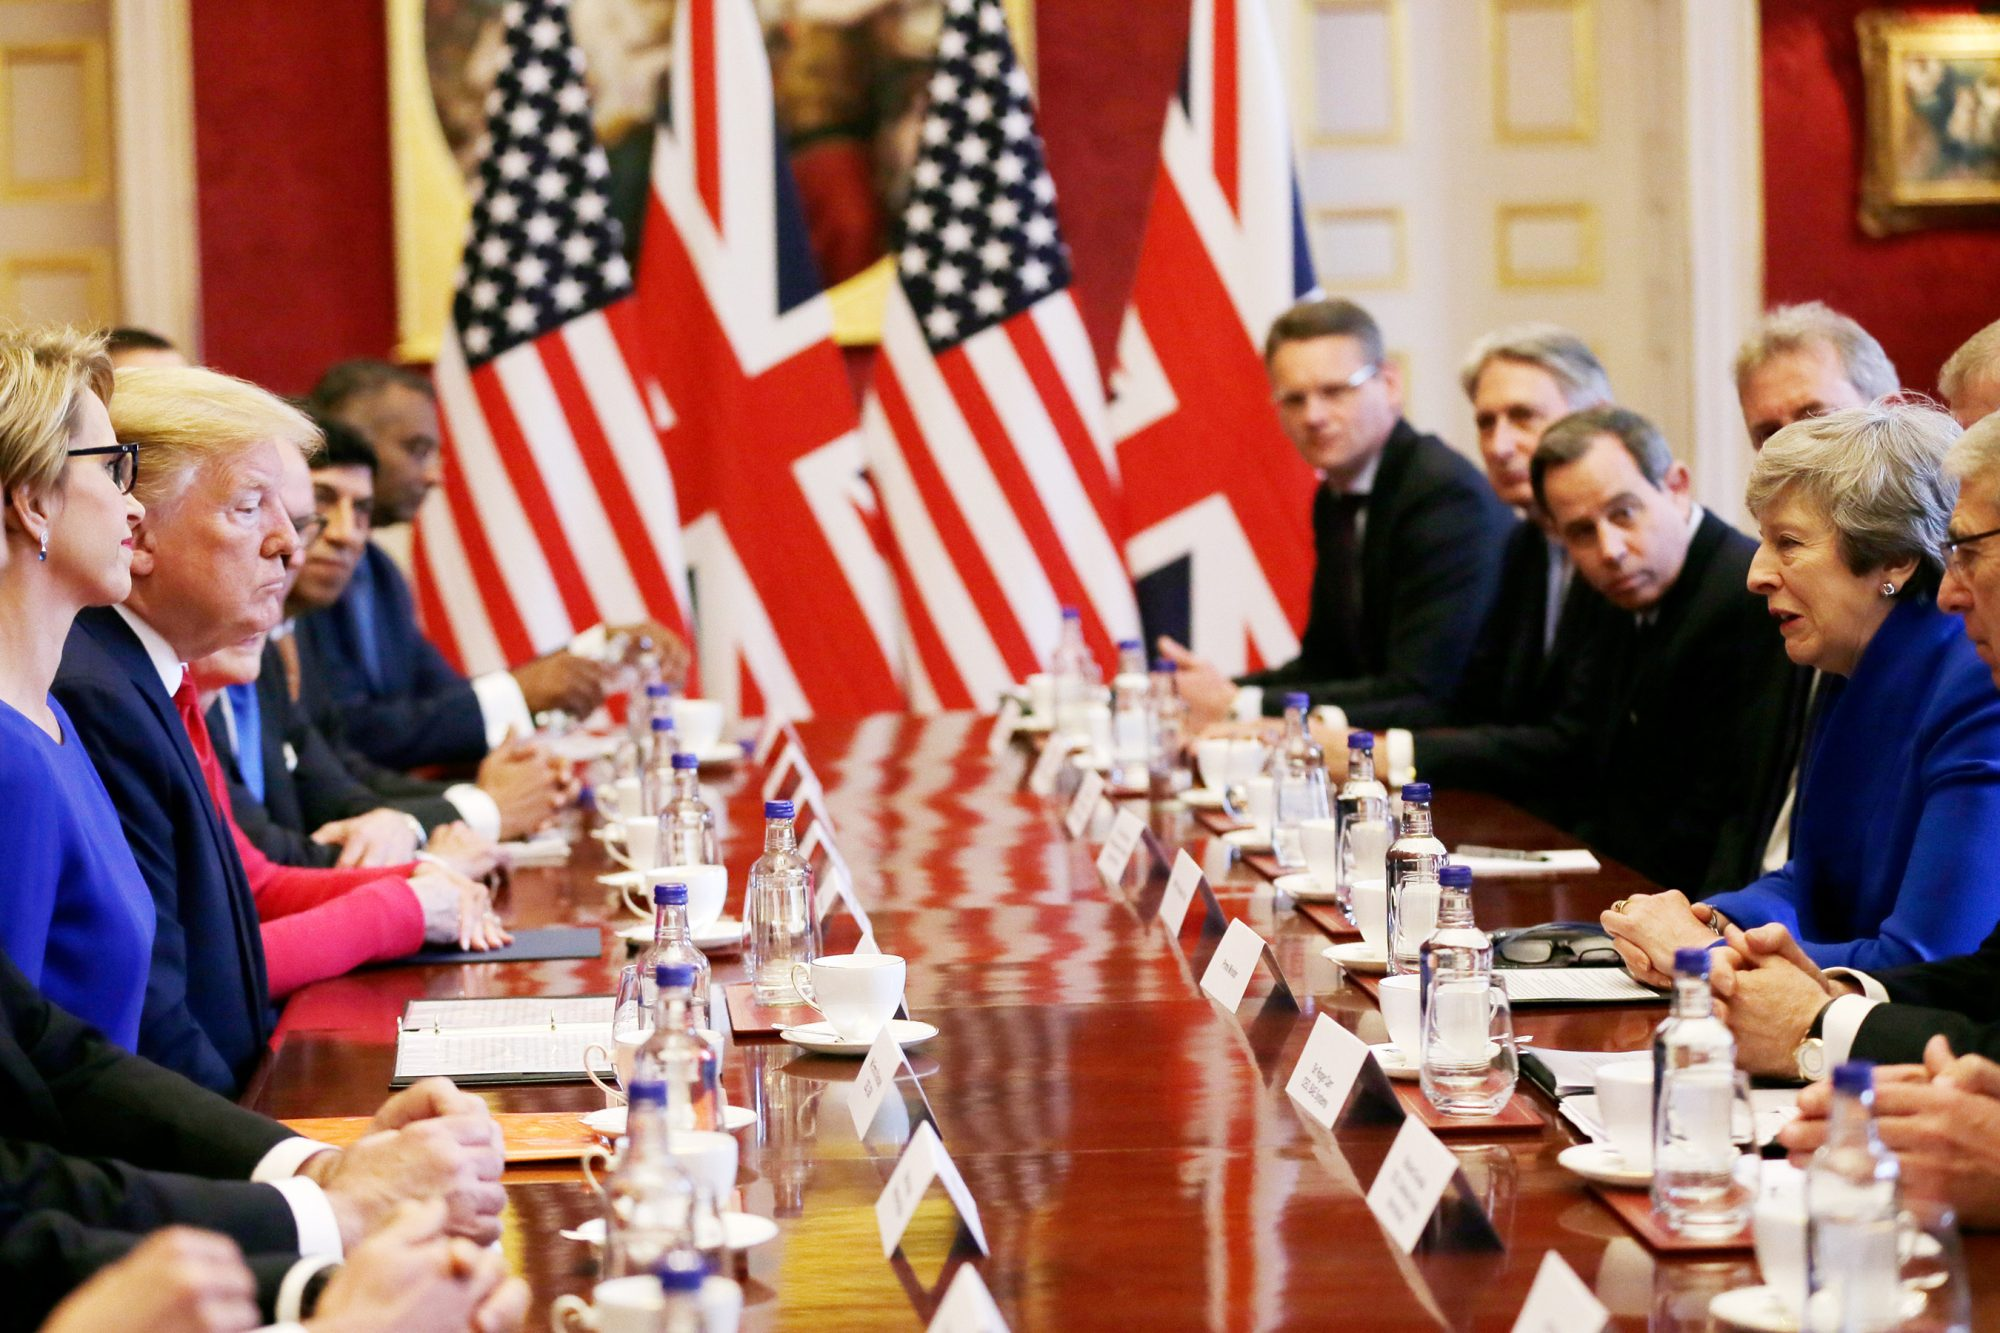 British Prime Minister Theresa May hosts a business round table event with U.S President Donald Trump at St. James's Palace, during the second day of his State Visit on June 4, 2019 in London, England